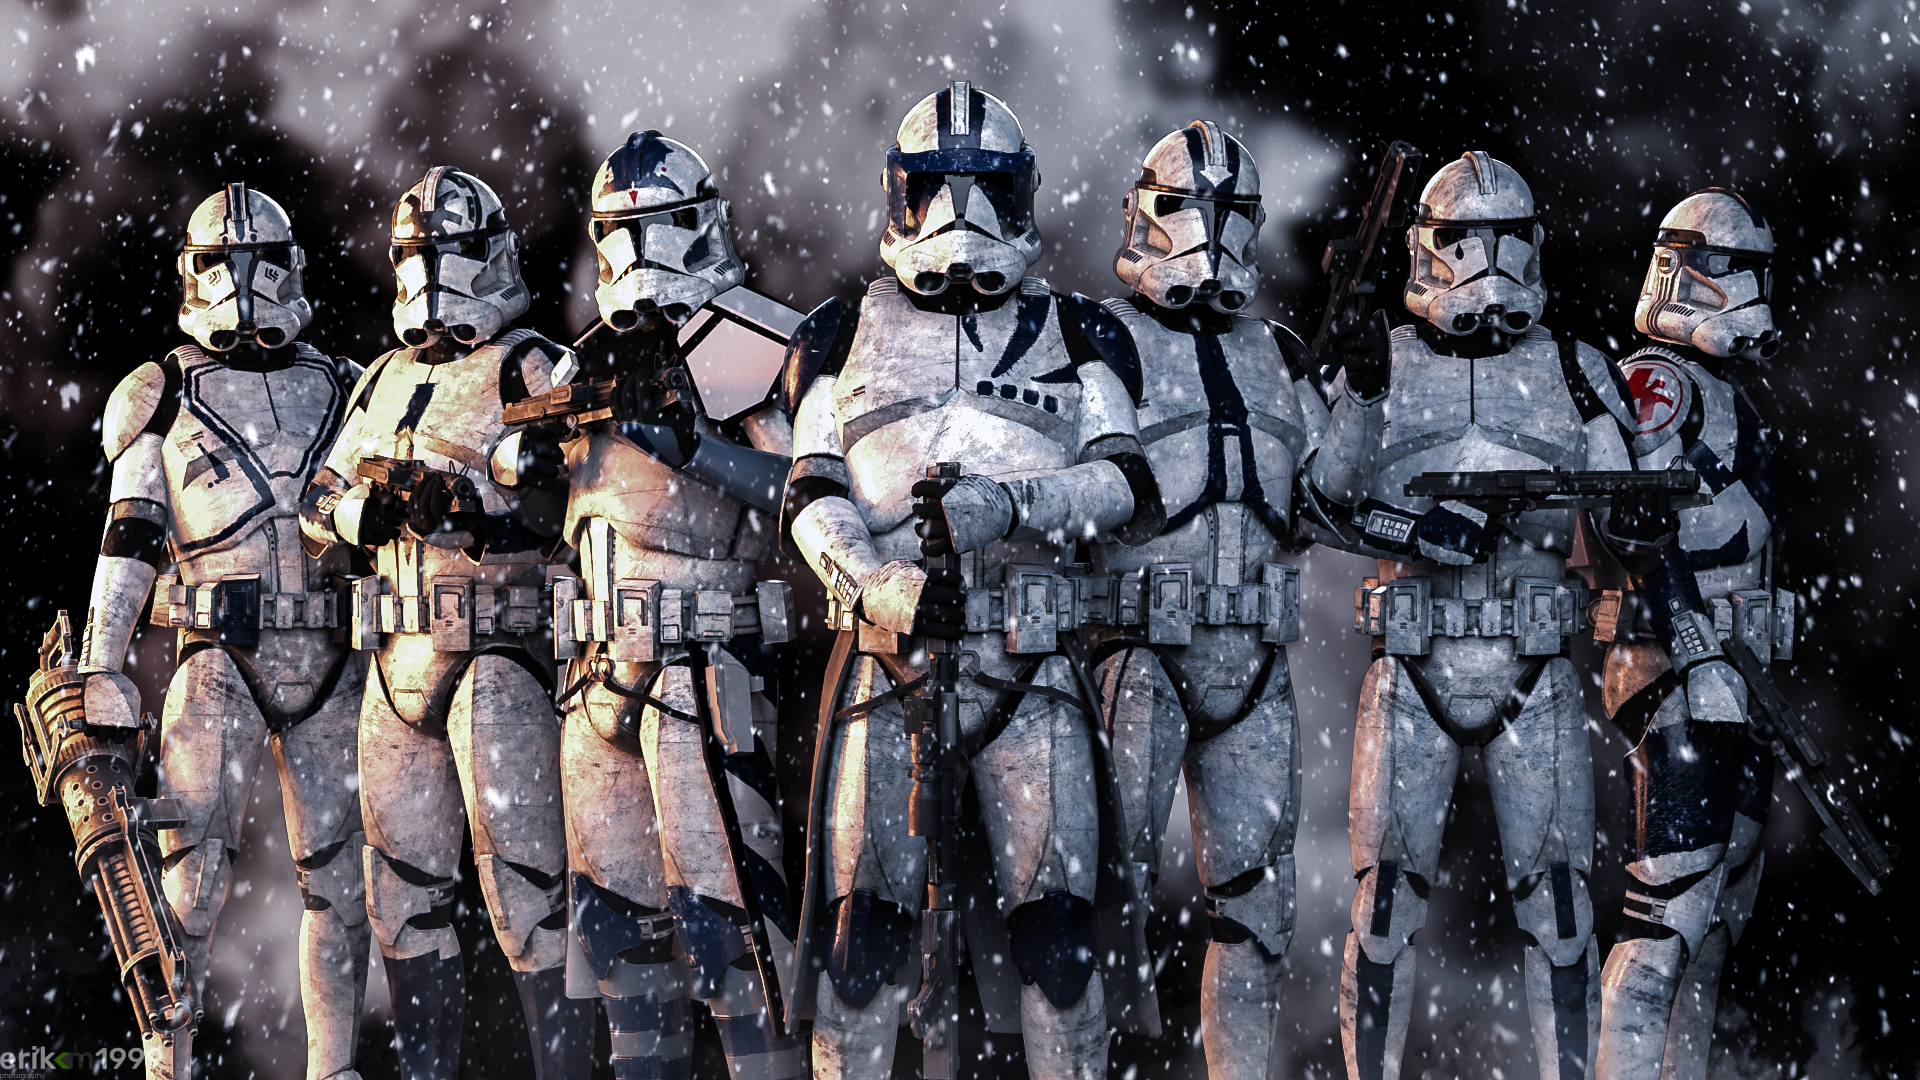 The finest of the 501st